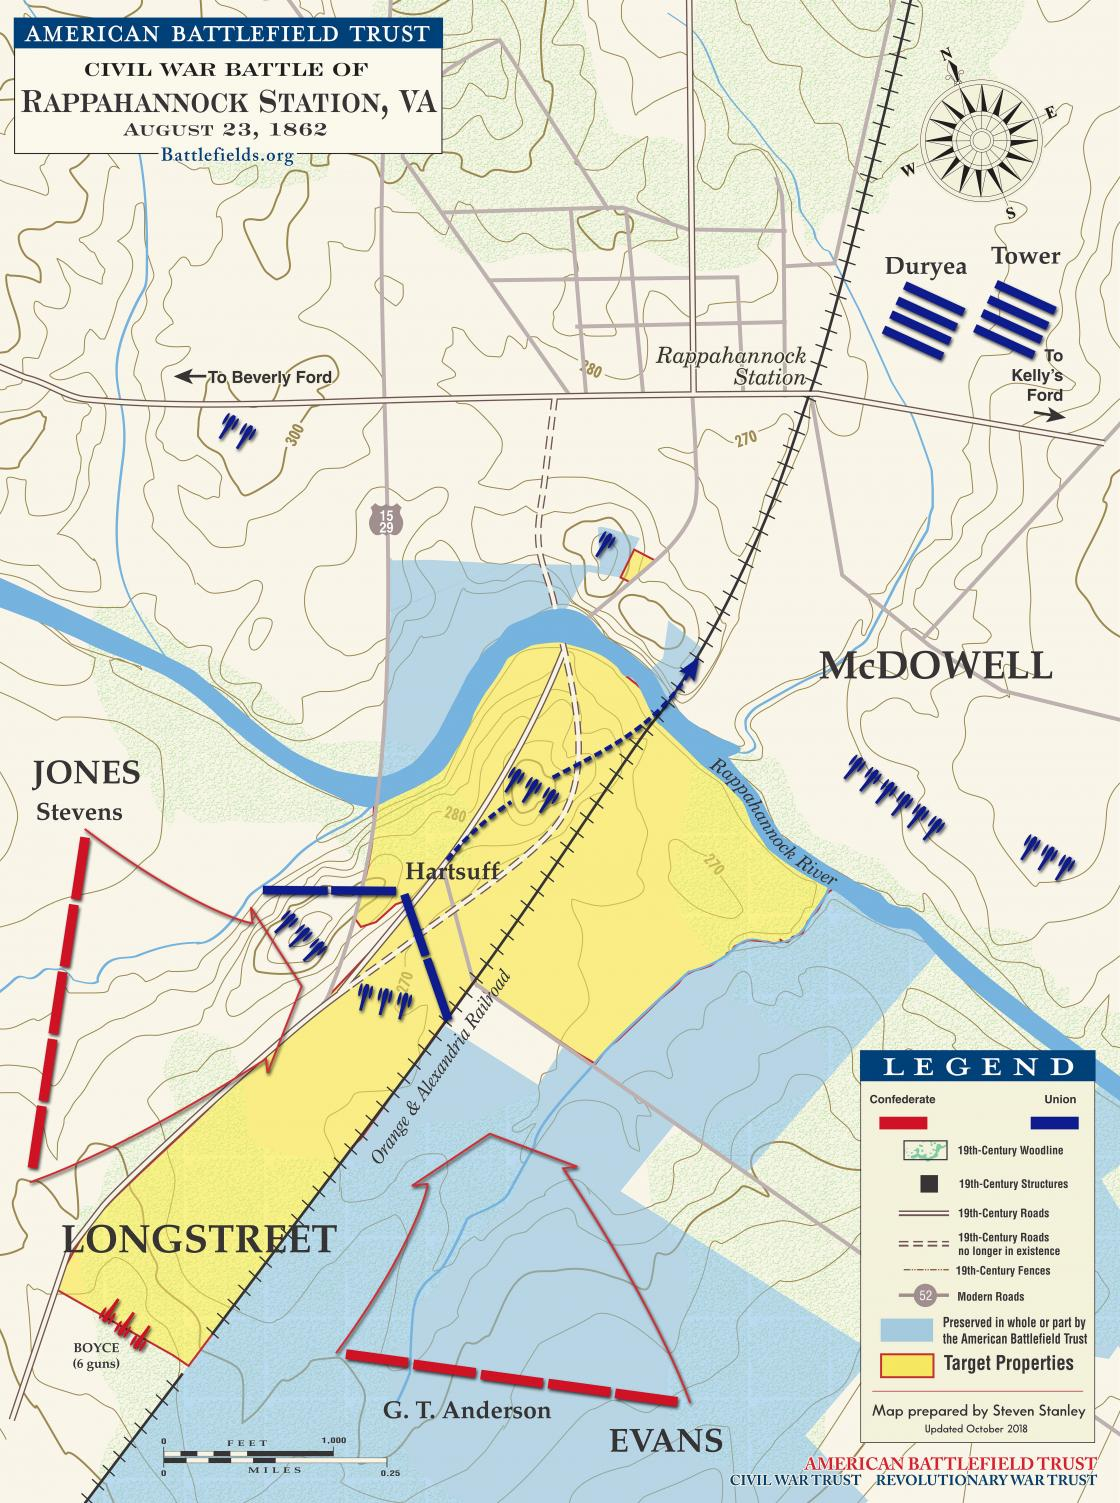 Battle of Rappahannock Station - August 22-25, 1862 ... on map of world war i battles, map of ww1 battles, map of spanish american war battles, world war 2 battles, map of japanese attack on pearl harbor, map of 13 colonies battles, map of war of 1812 battles, war of the roses battles, map of napoleonic wars, map of revolutionary war battles, map of battle of gettysburg, map of inventions, map of europe during world war 2, map of vietnam war, map of napoleon's battles, map of abraham lincoln, map of world war 1 alliances, map of peloponnesian war battles, map of korean war, map of mexican war battles,